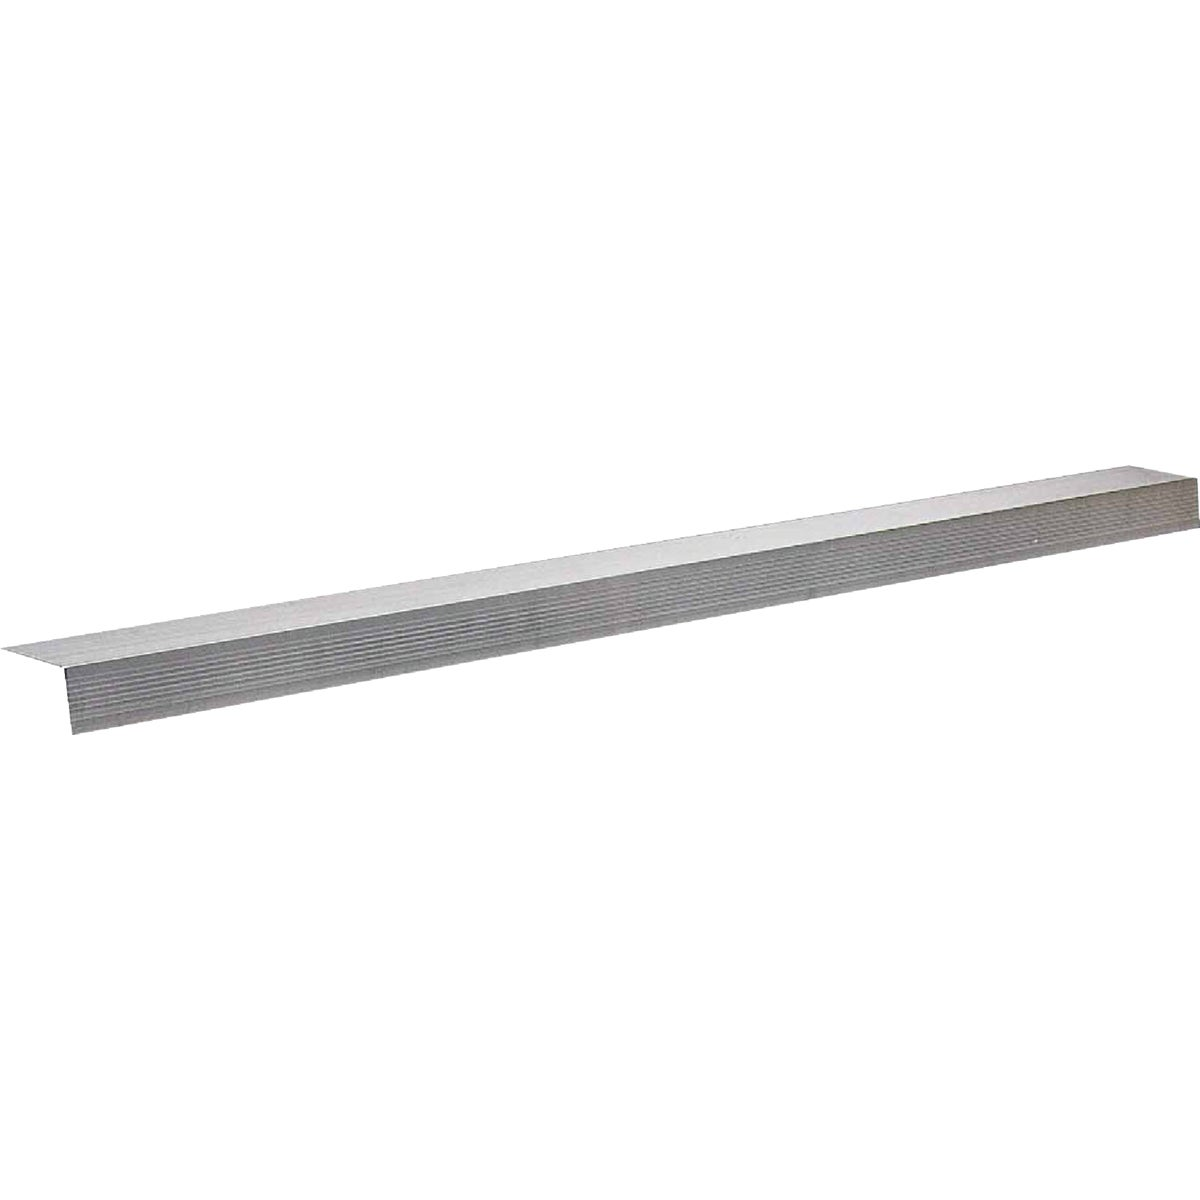 2-3/4X3 MILL SILL NOSING - 81869 by M D Building Prod